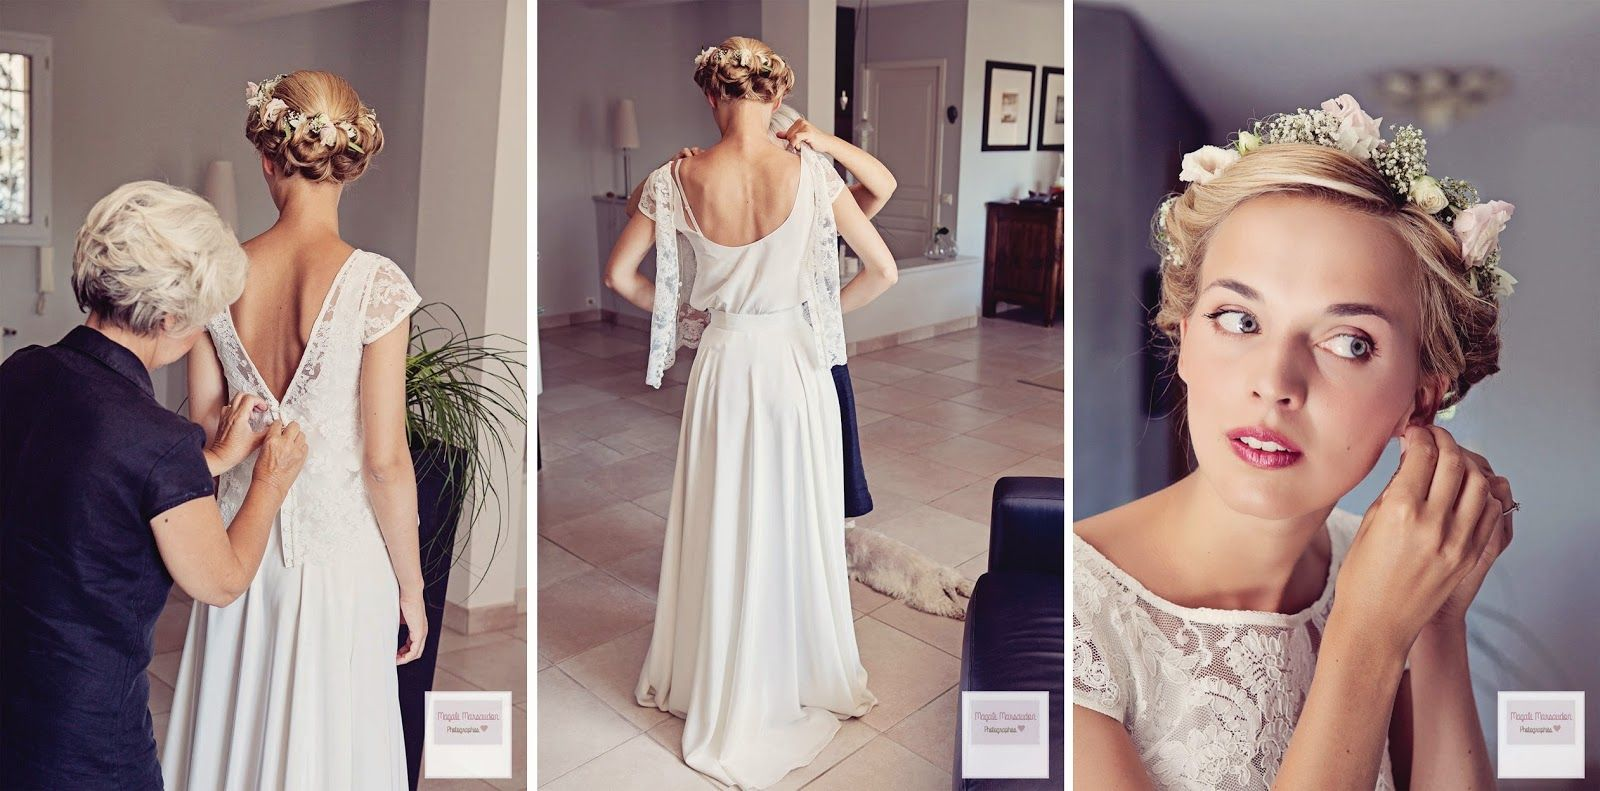 1000 Images About Coiffure On Pinterest Mariage Coiffures And